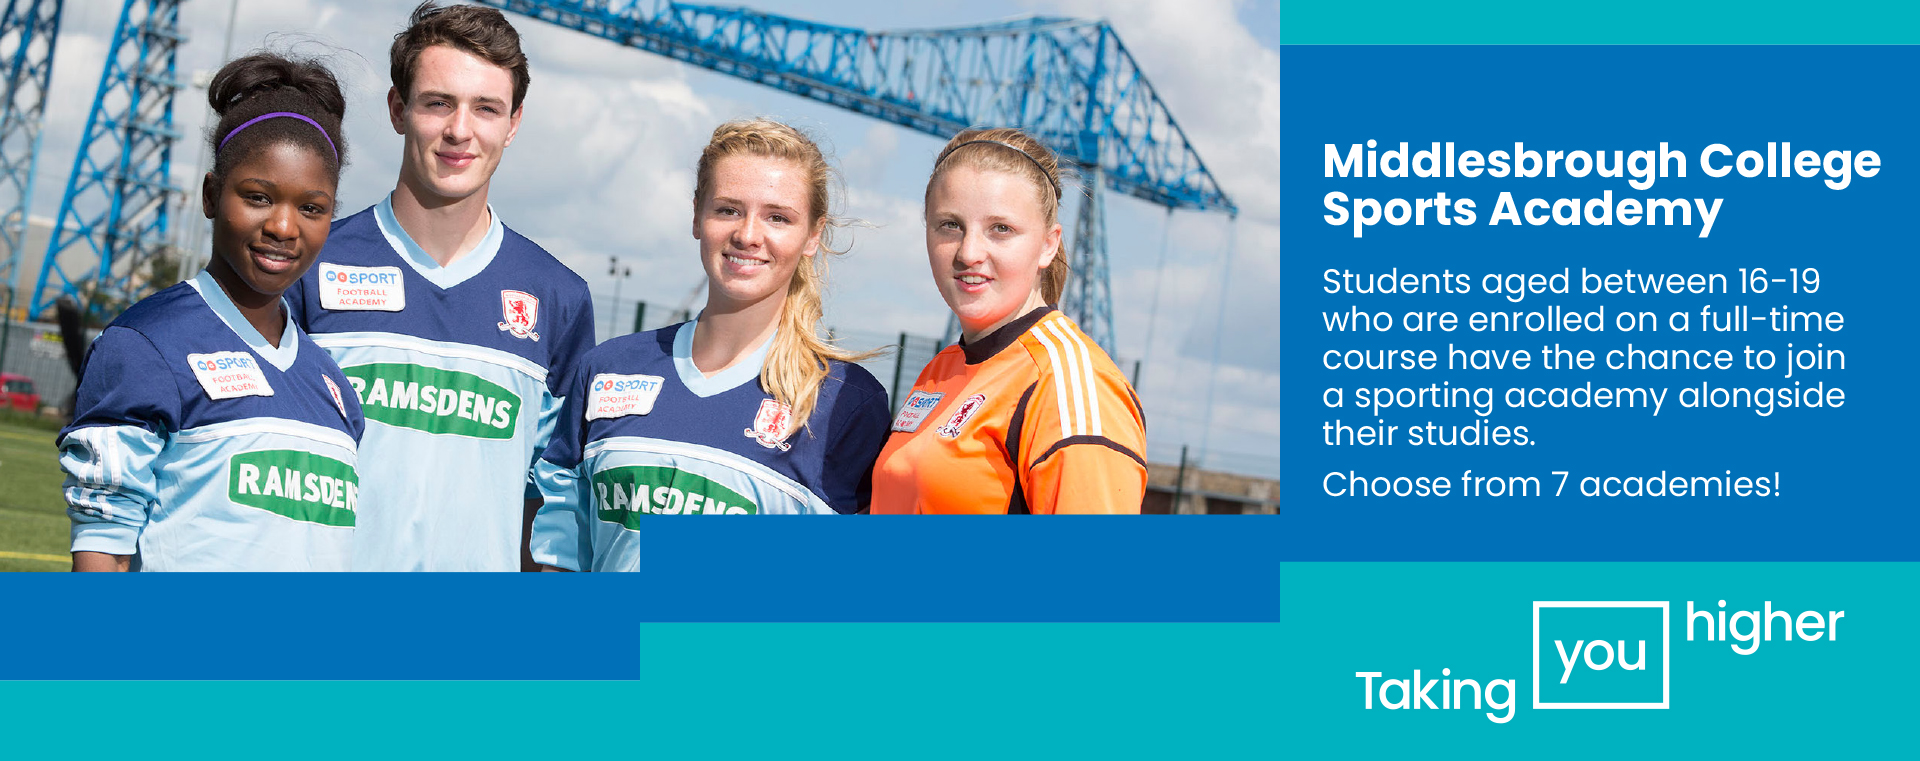 Middlesbrough College Sports Academies